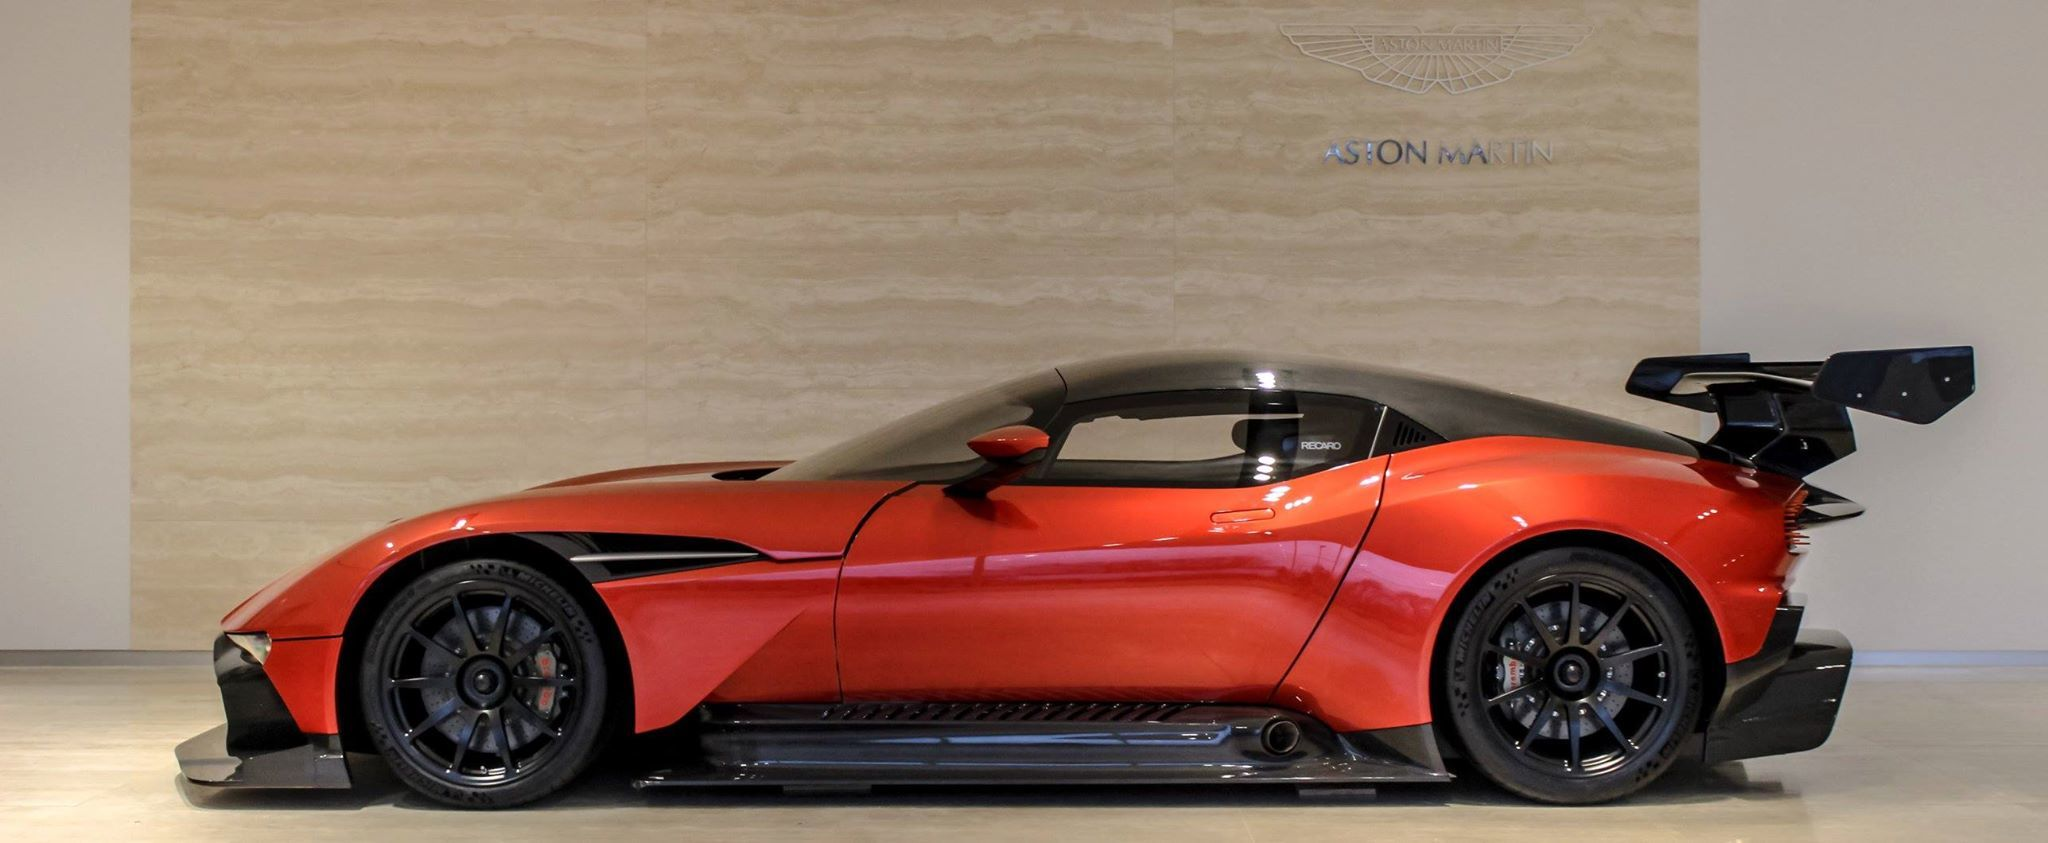 $3.4 Million Will Buy You This Aston Martin Vulcan - autoevolution